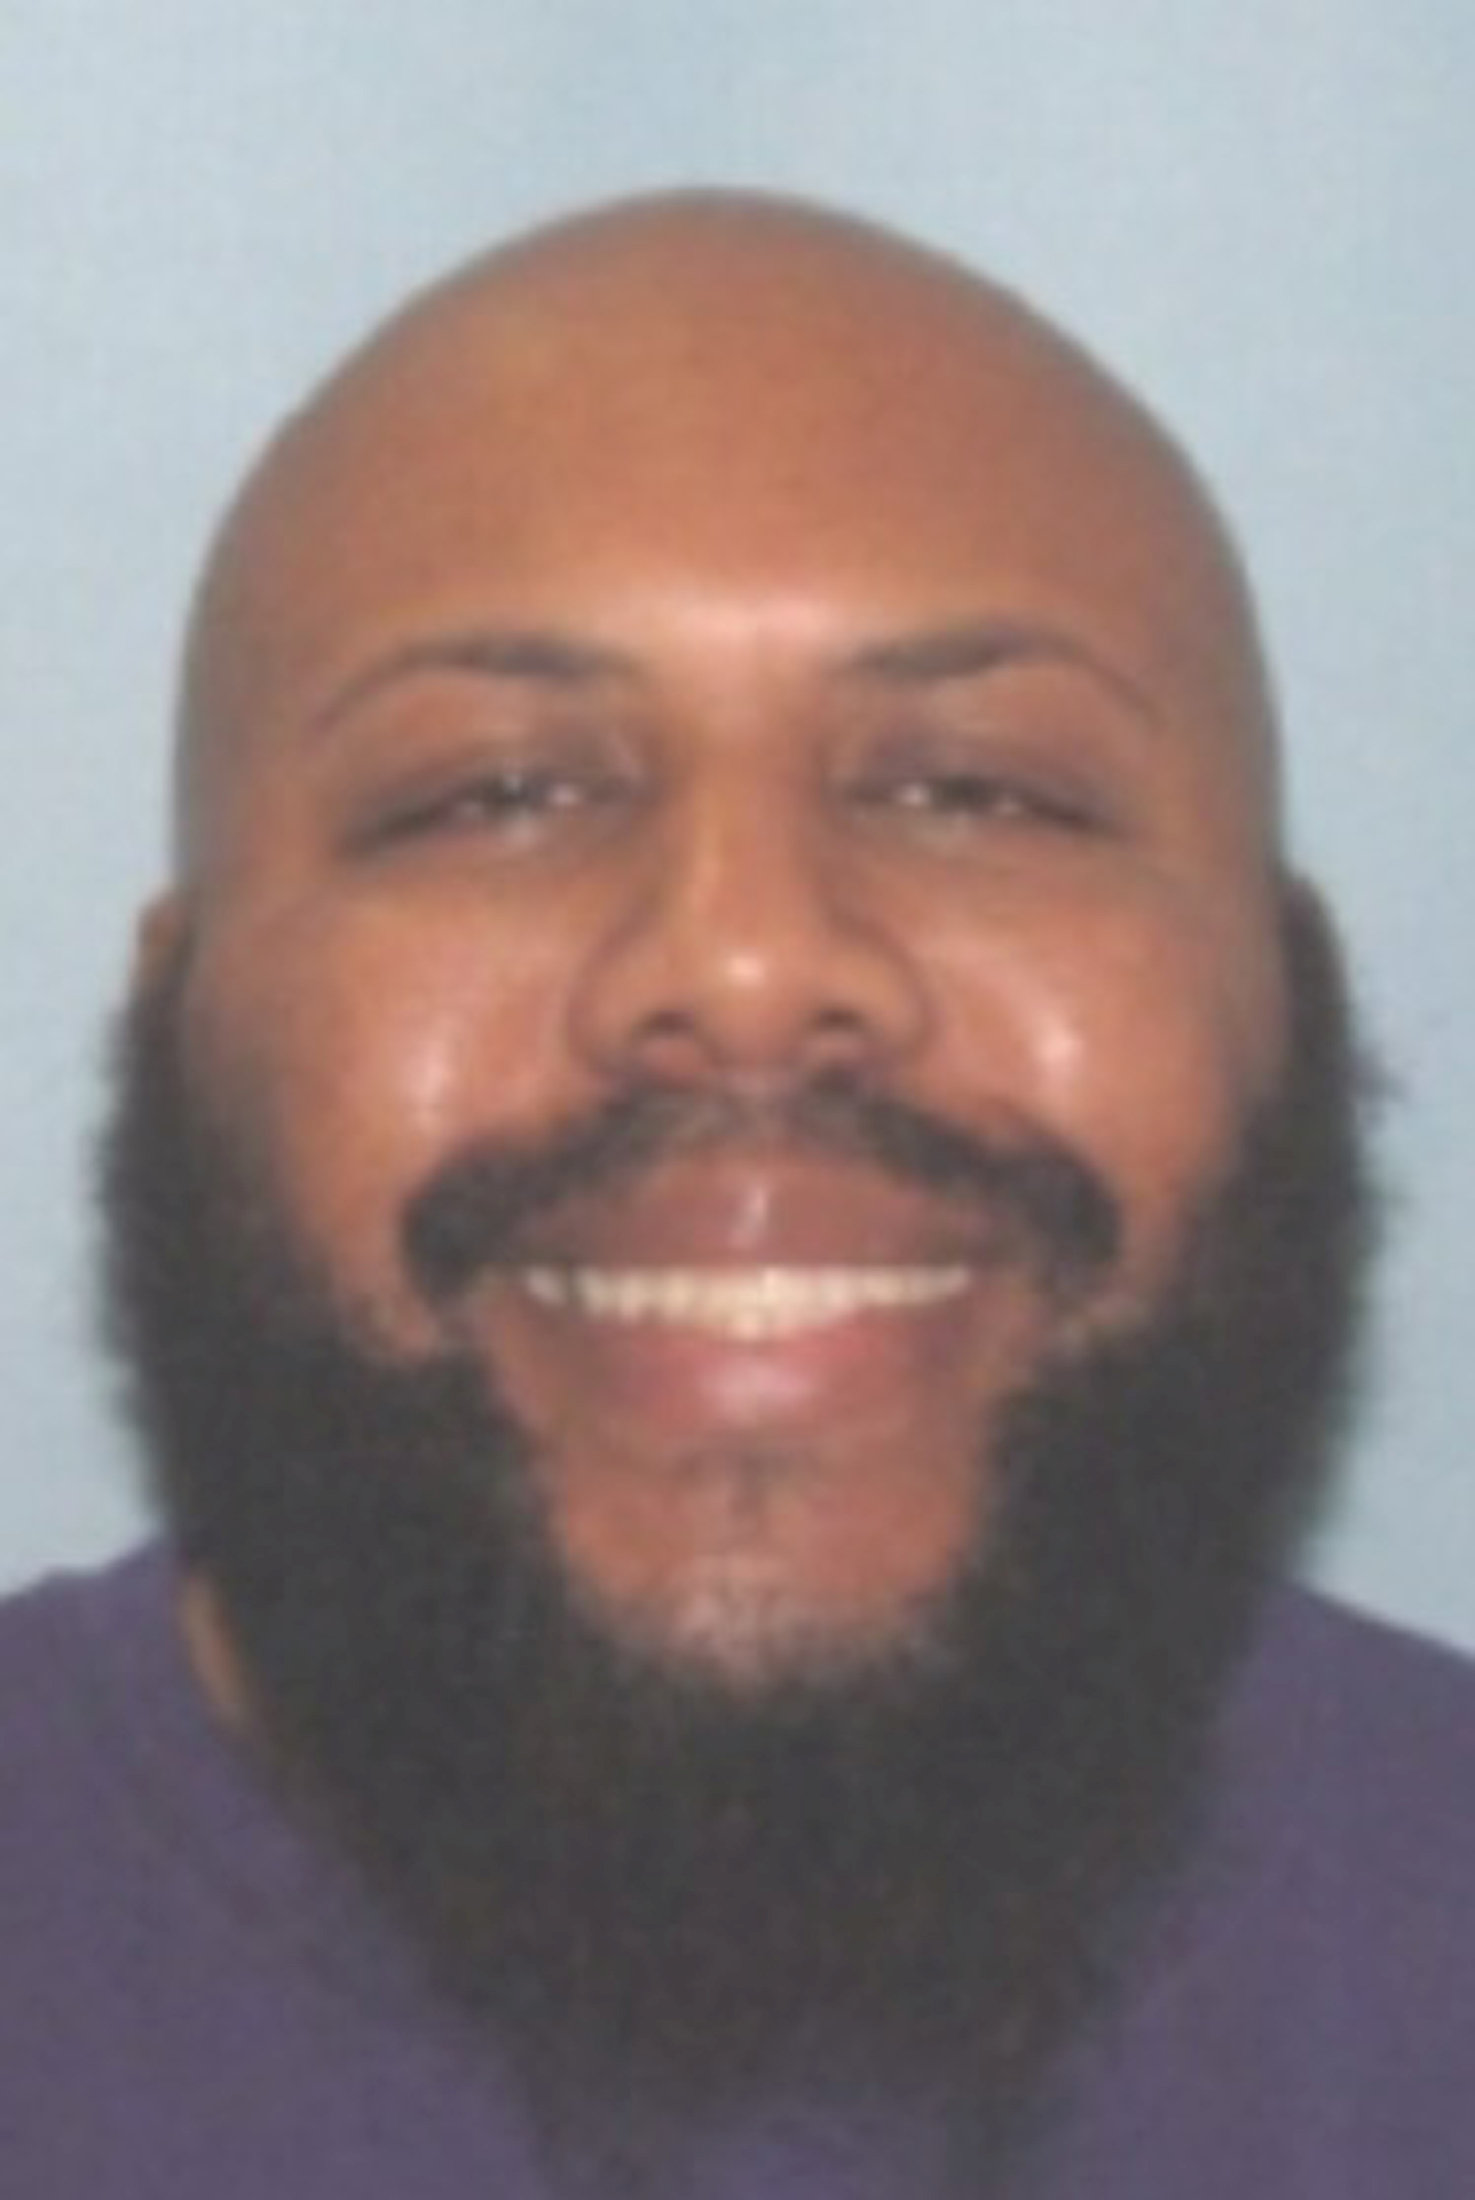 Steve Stephens is seen in an undated handout photo released on April 16, 2017.  (Cleveland Police/Handout via REUTERS)